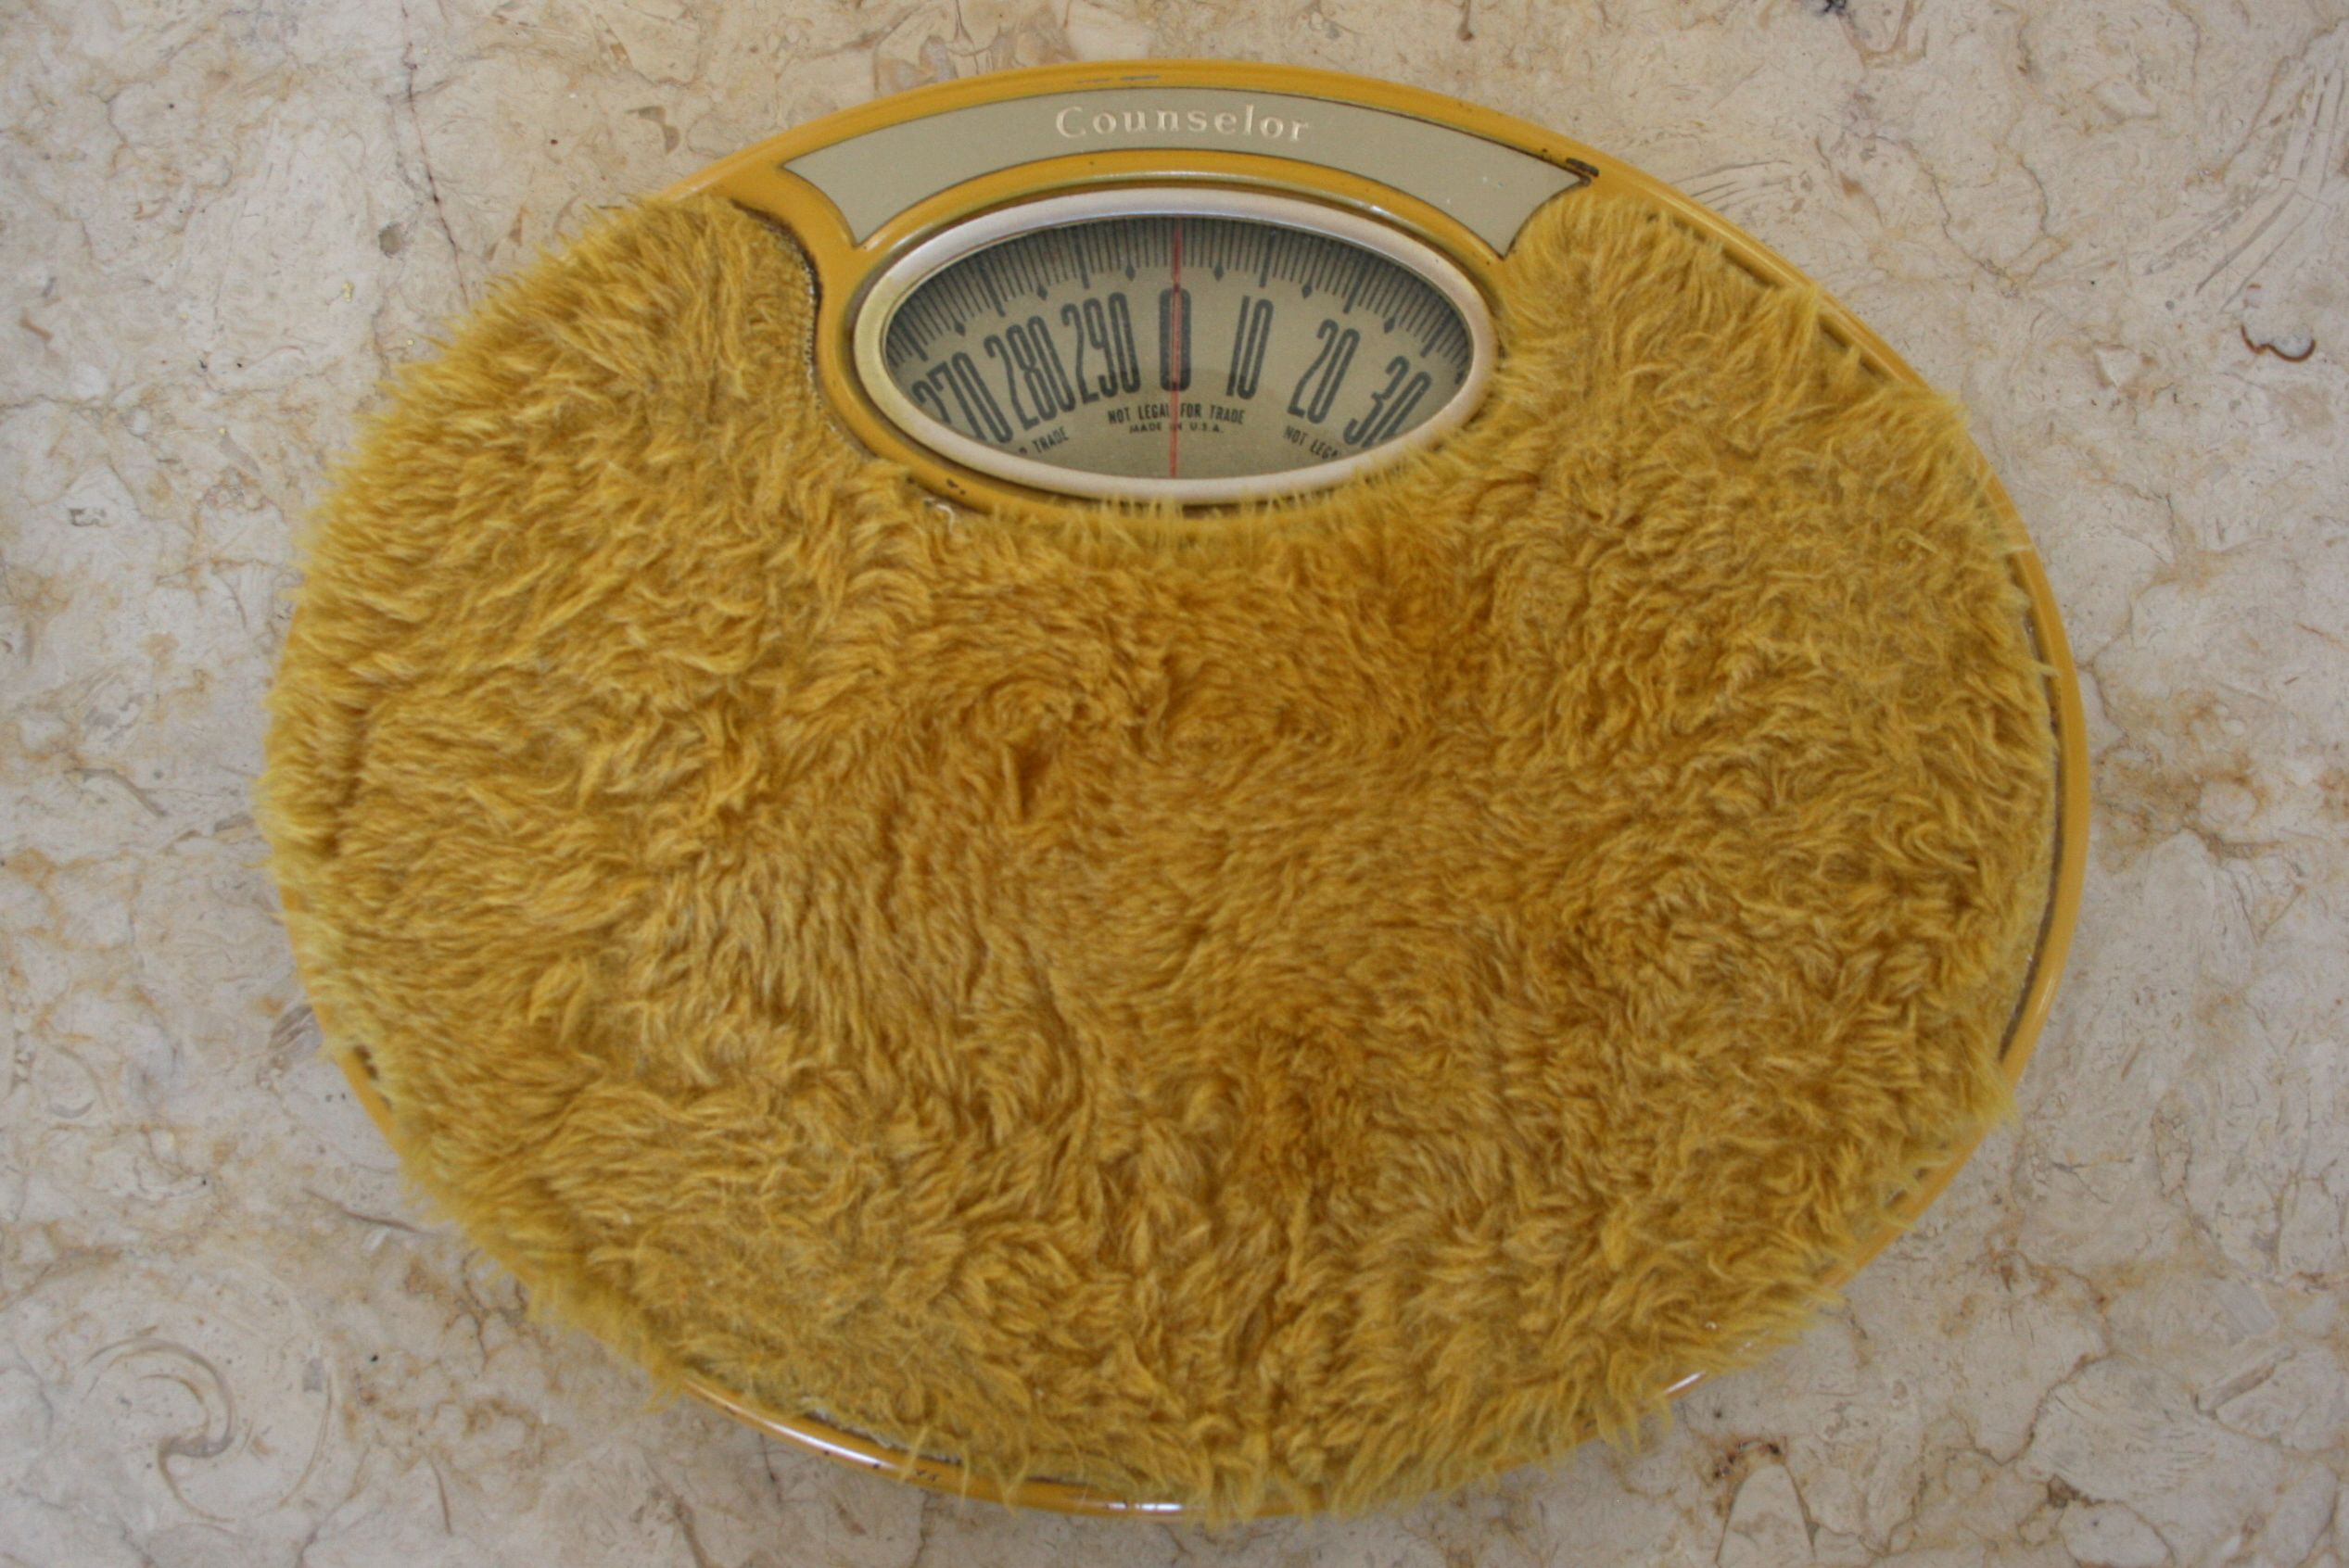 1970s Bathroom Scale Forgot About These And By The Looks Of It